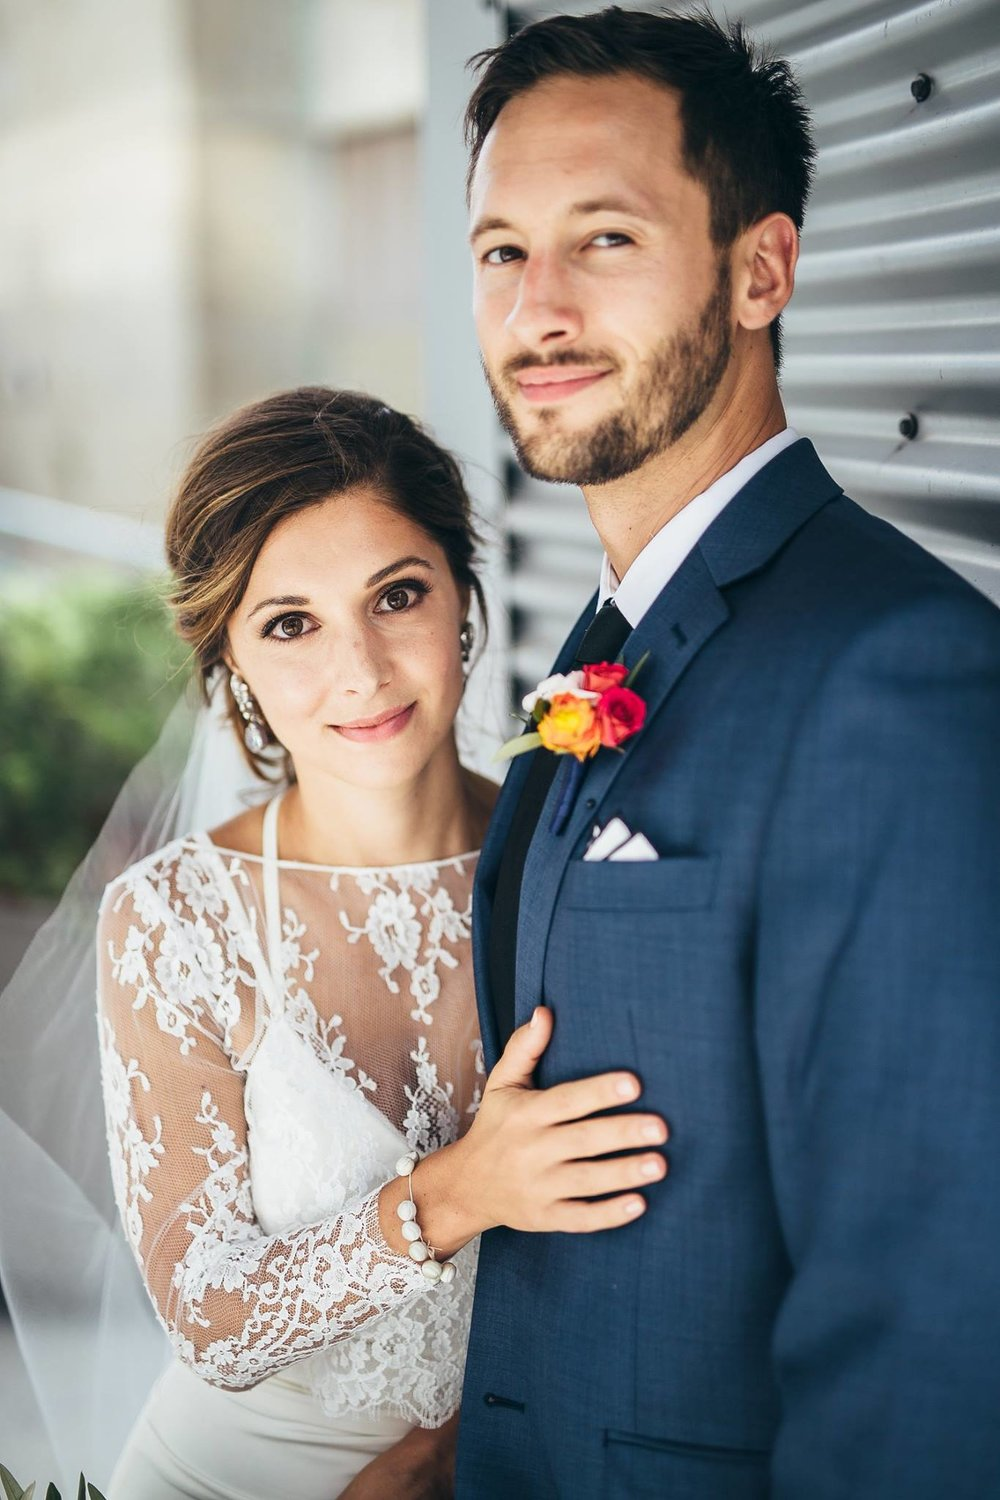 Wedding photography in Madison, Wisconsin